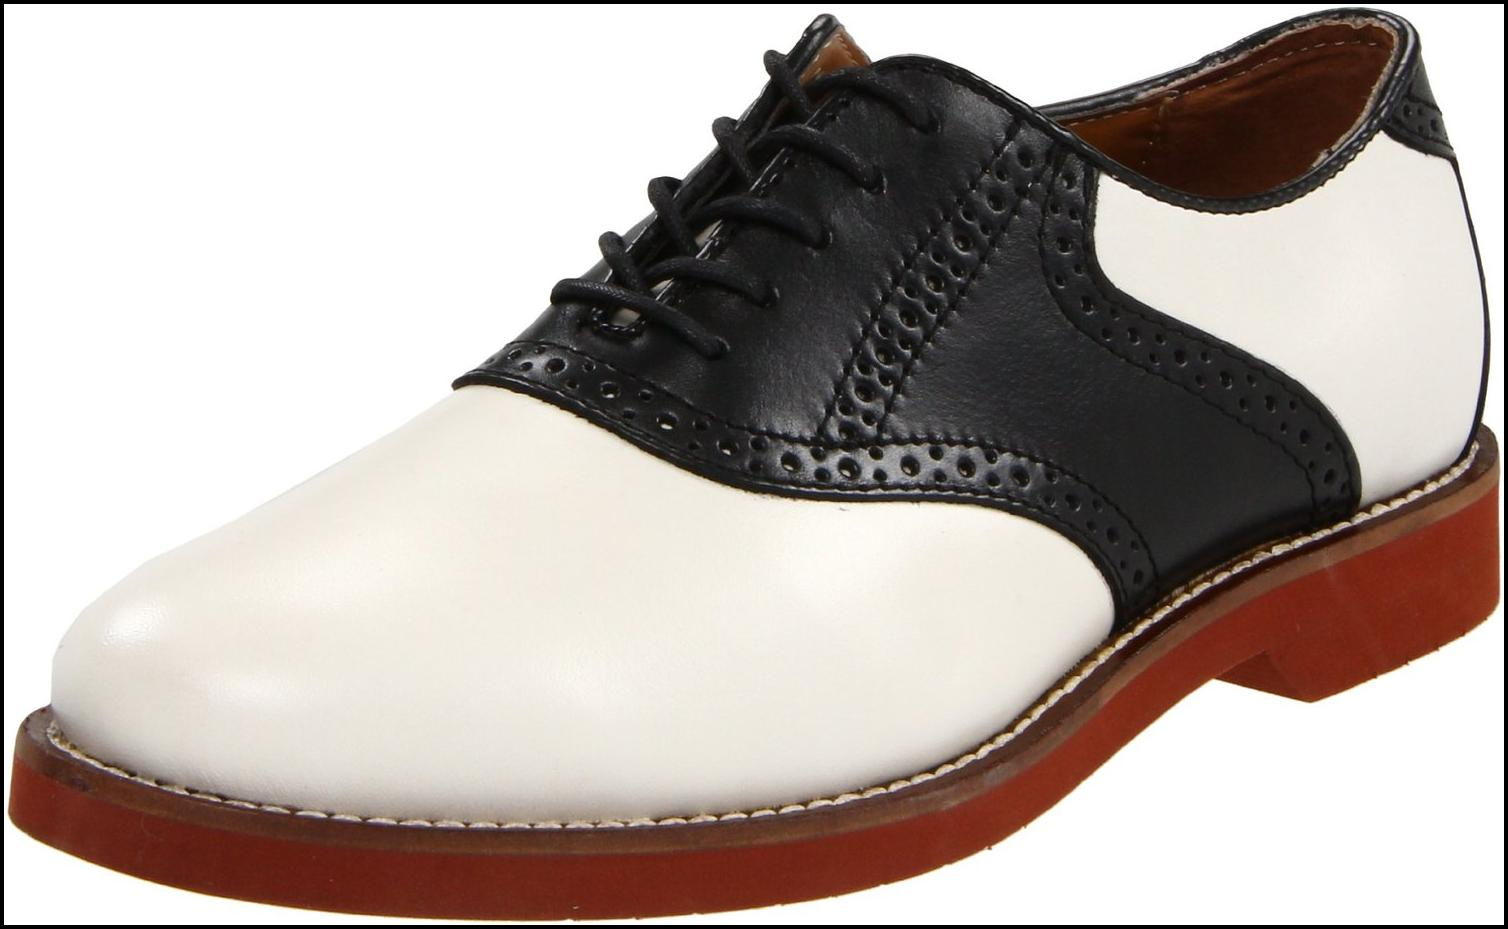 Bass Black And White Saddle Shoes